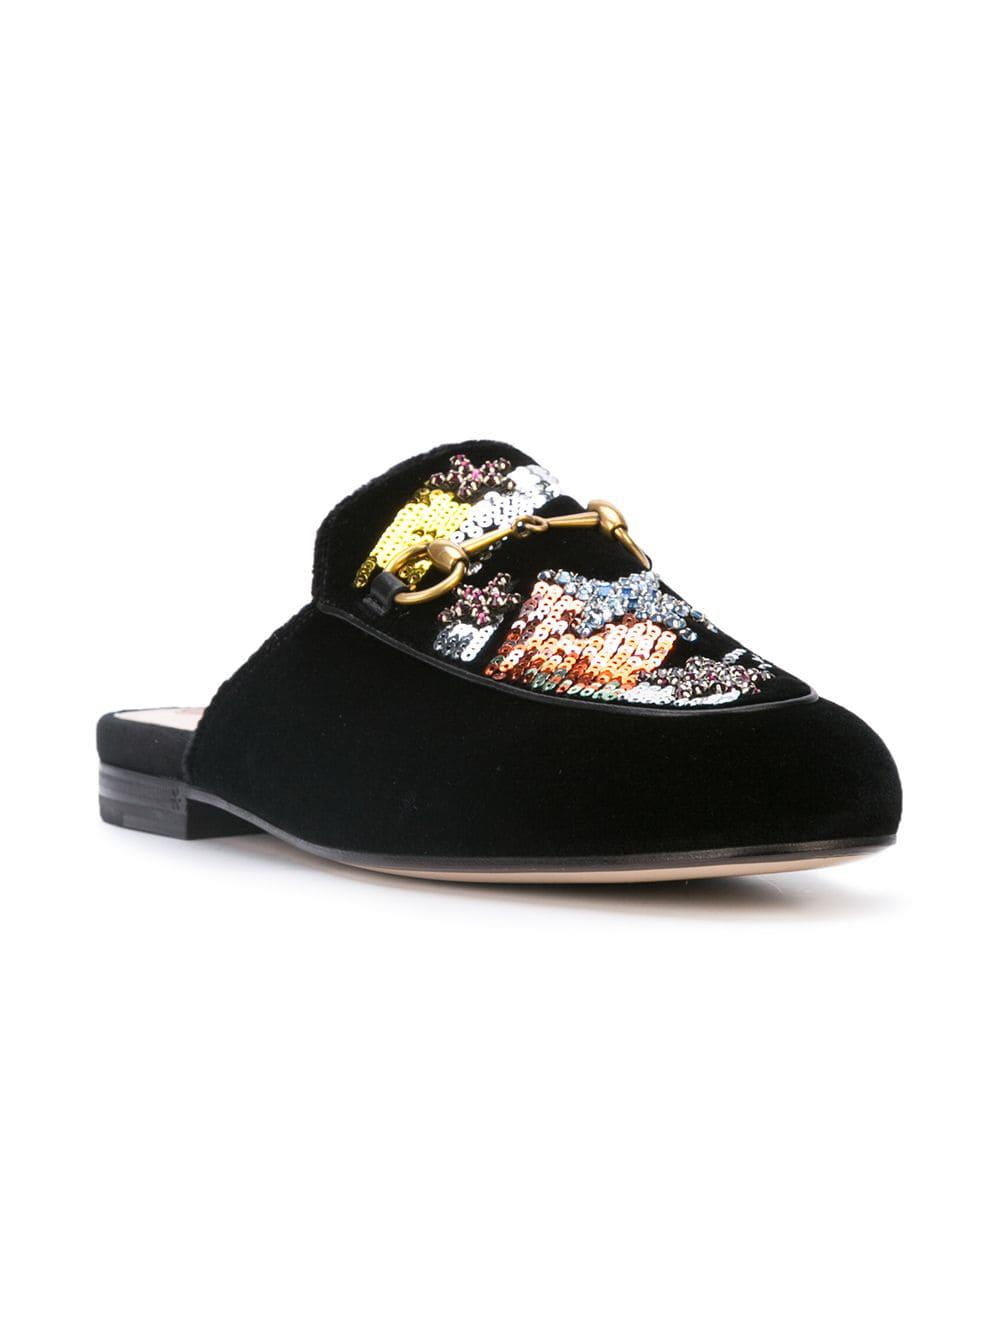 5d06f11ae04 Lyst - Gucci Princetown Embroidered Mules in Black